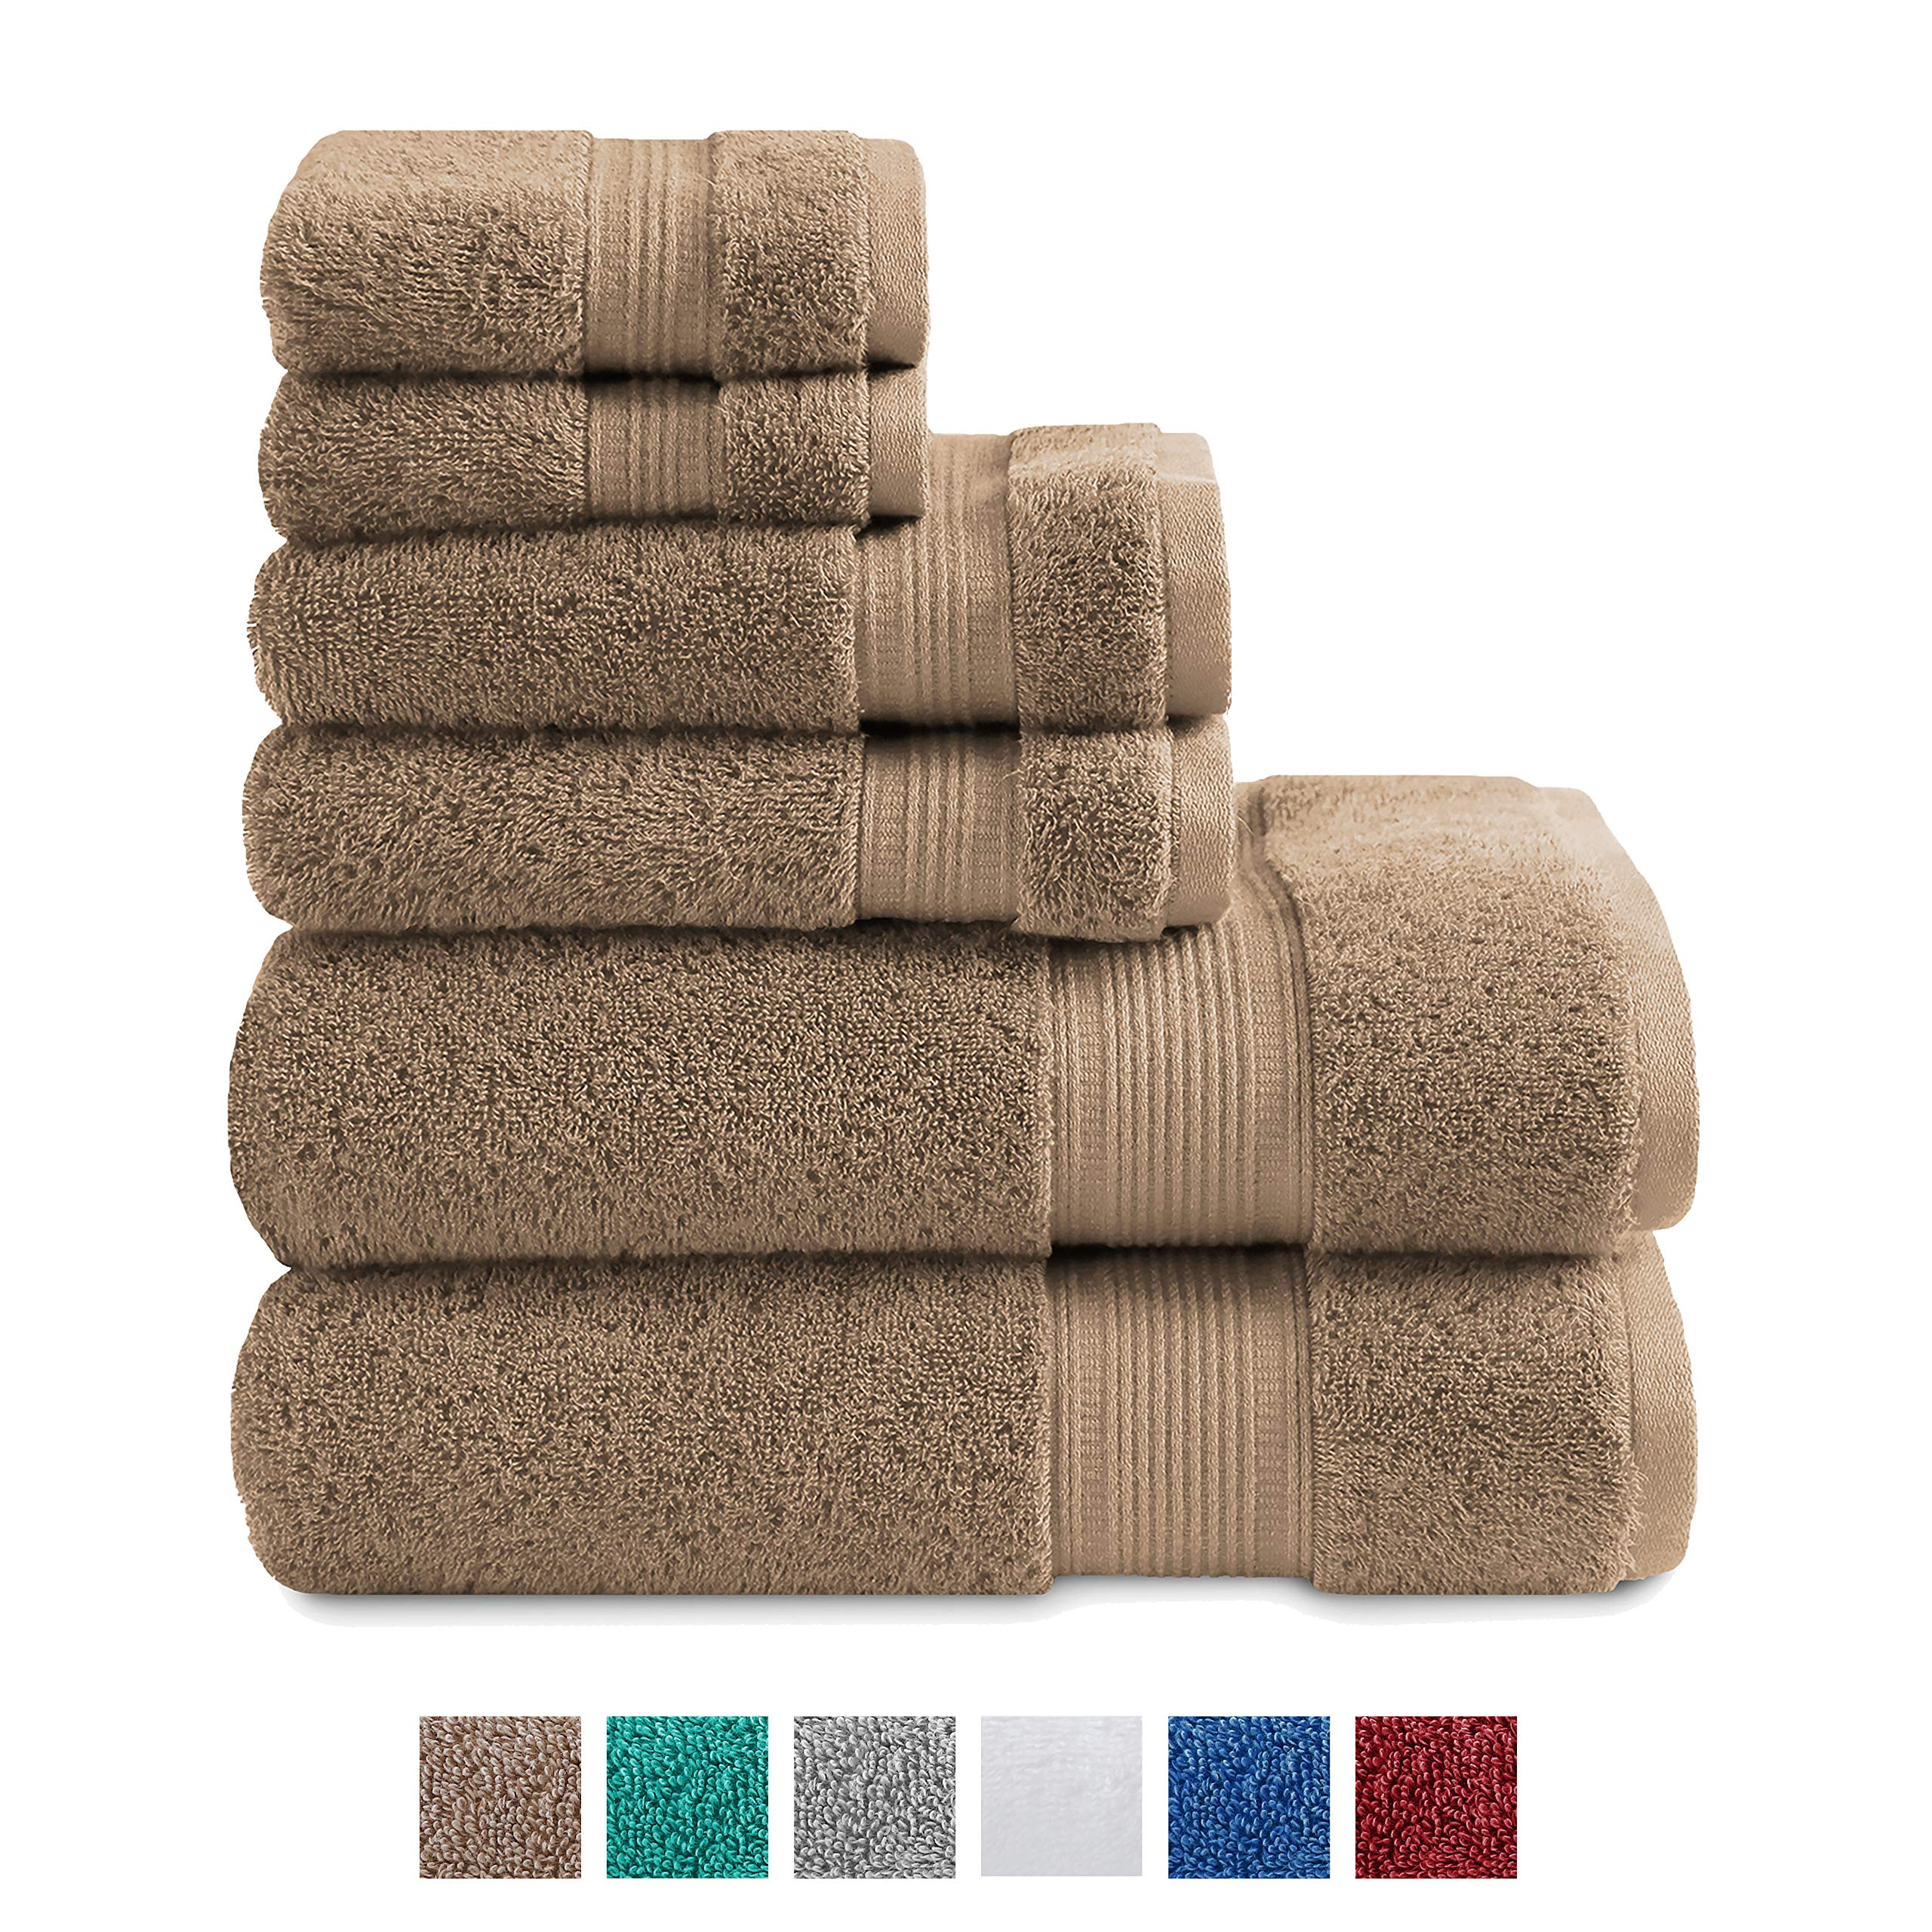 TRIDENT Large Bath Towels, 100% Cotton Feather Soft Towels, 6 Piece Set -2 Bath, 2 Hand, 2 Washcloths, Absorbent, Soft & Plush Bath Towels (New Acorn) by TRIDENT